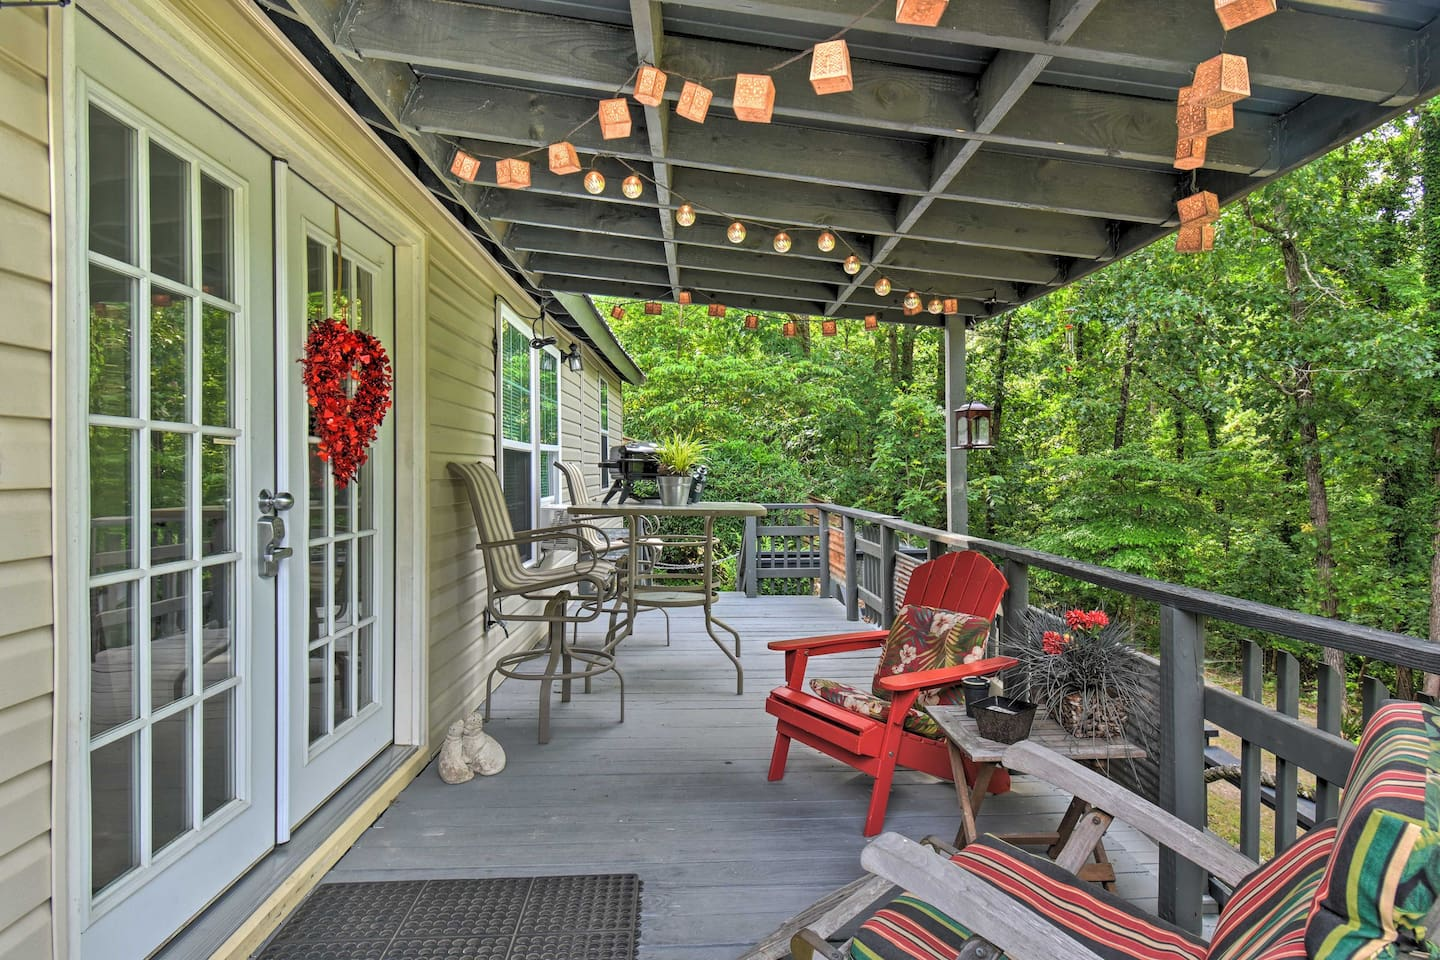 Find peace among nature in 'The Mona Lisa,' a 1-bed, 1-bath vacation rental!